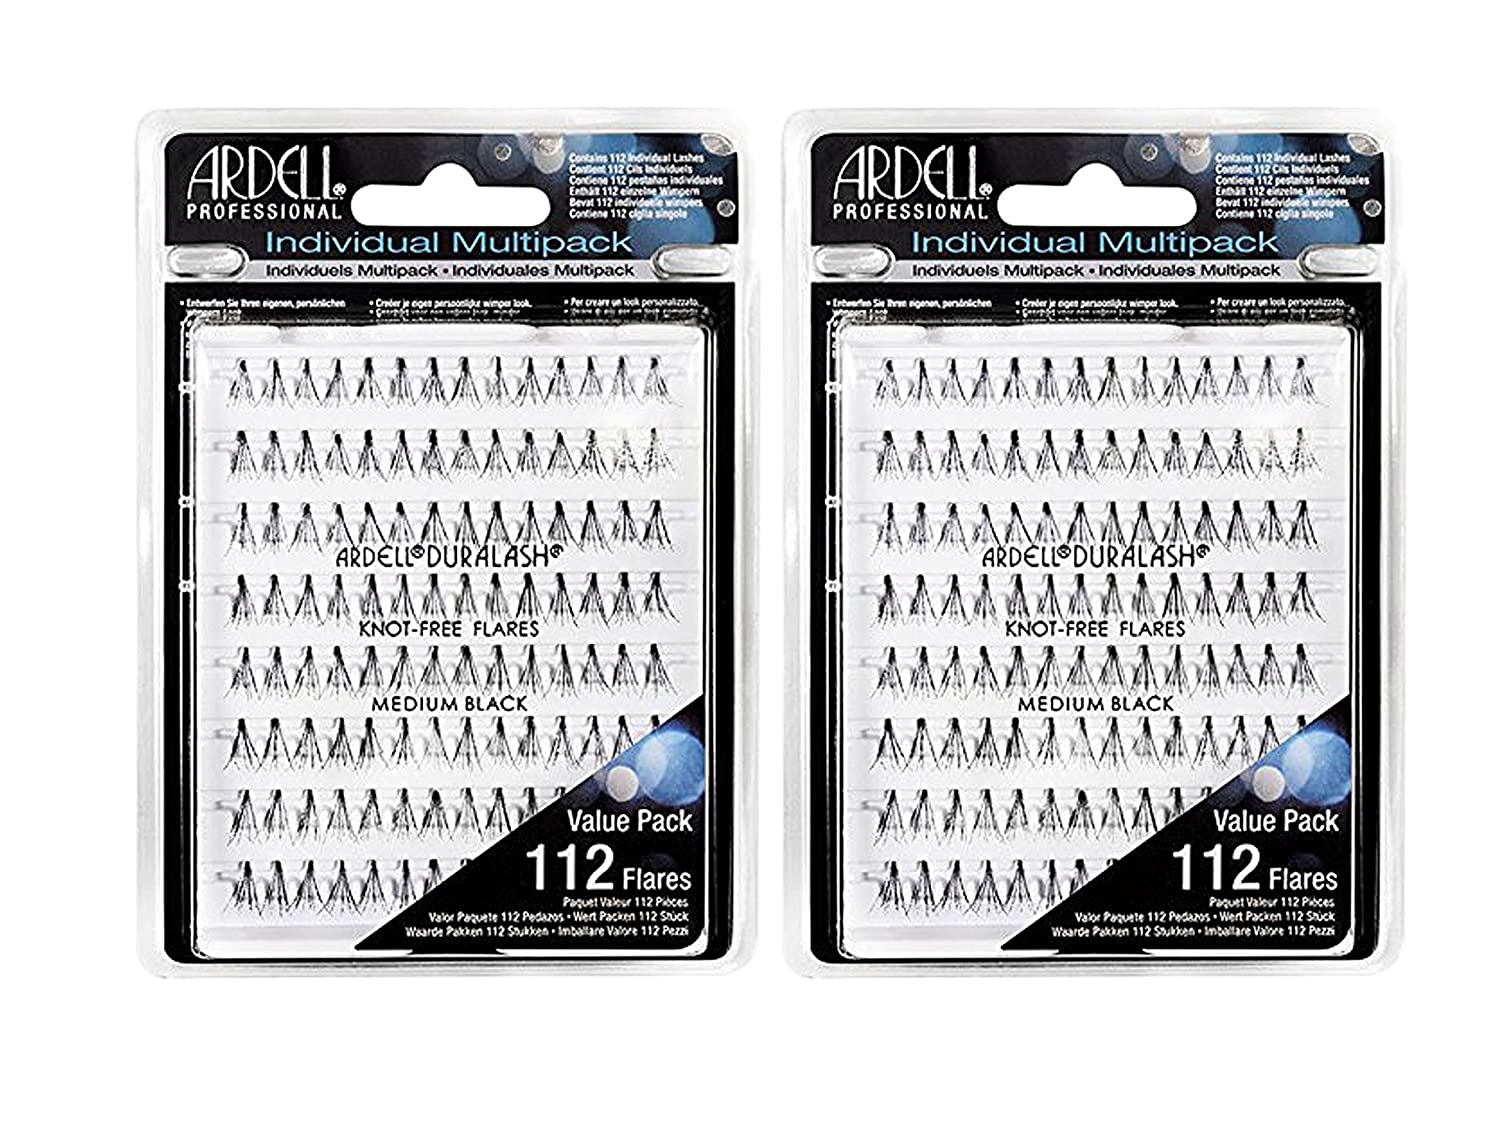 Ardell - Multipack Individual Lashes, Knot-Free (Medium) (2-Pack)